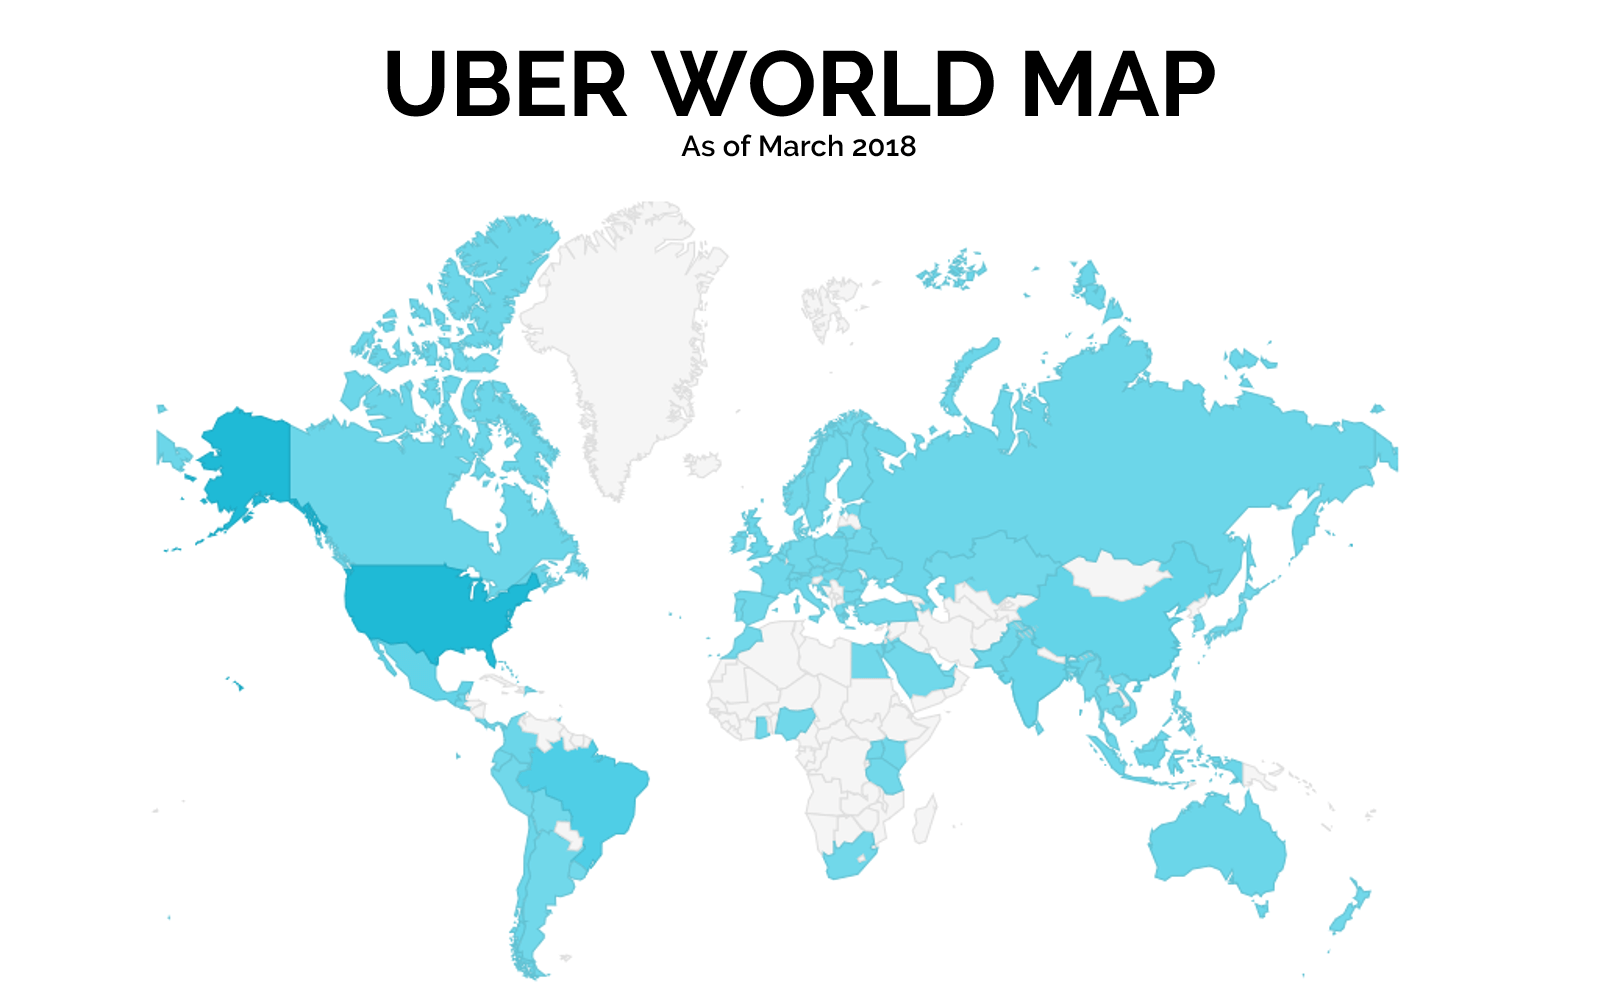 Uber-World-Map